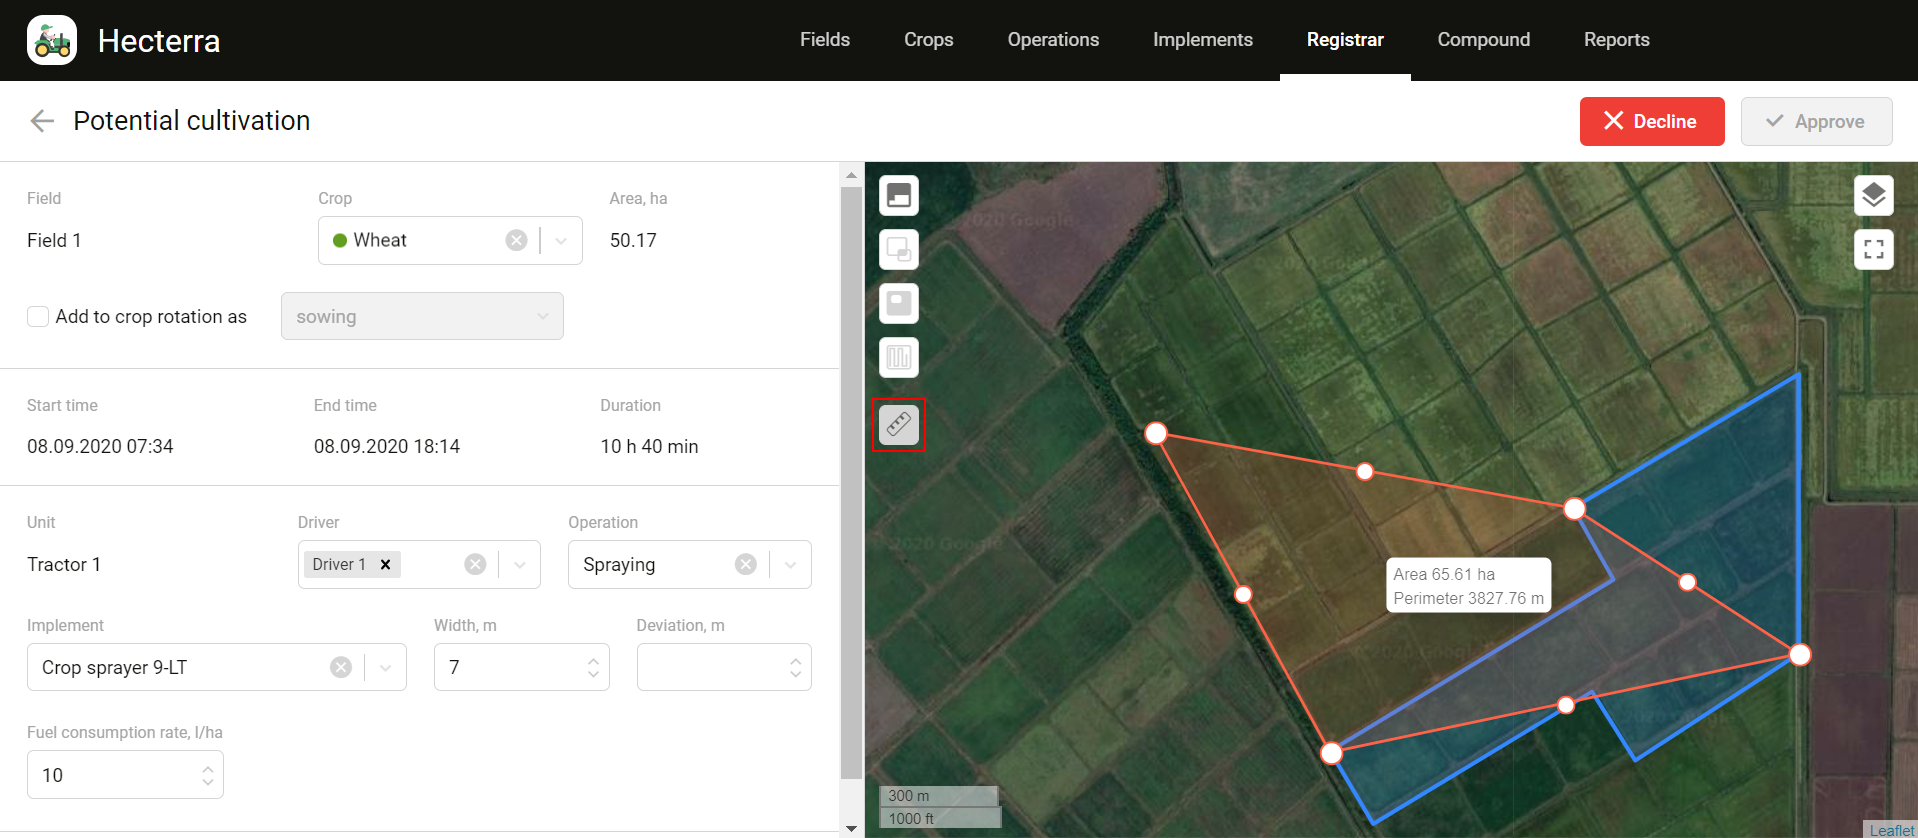 Measuring distance and area tool in Hecterra